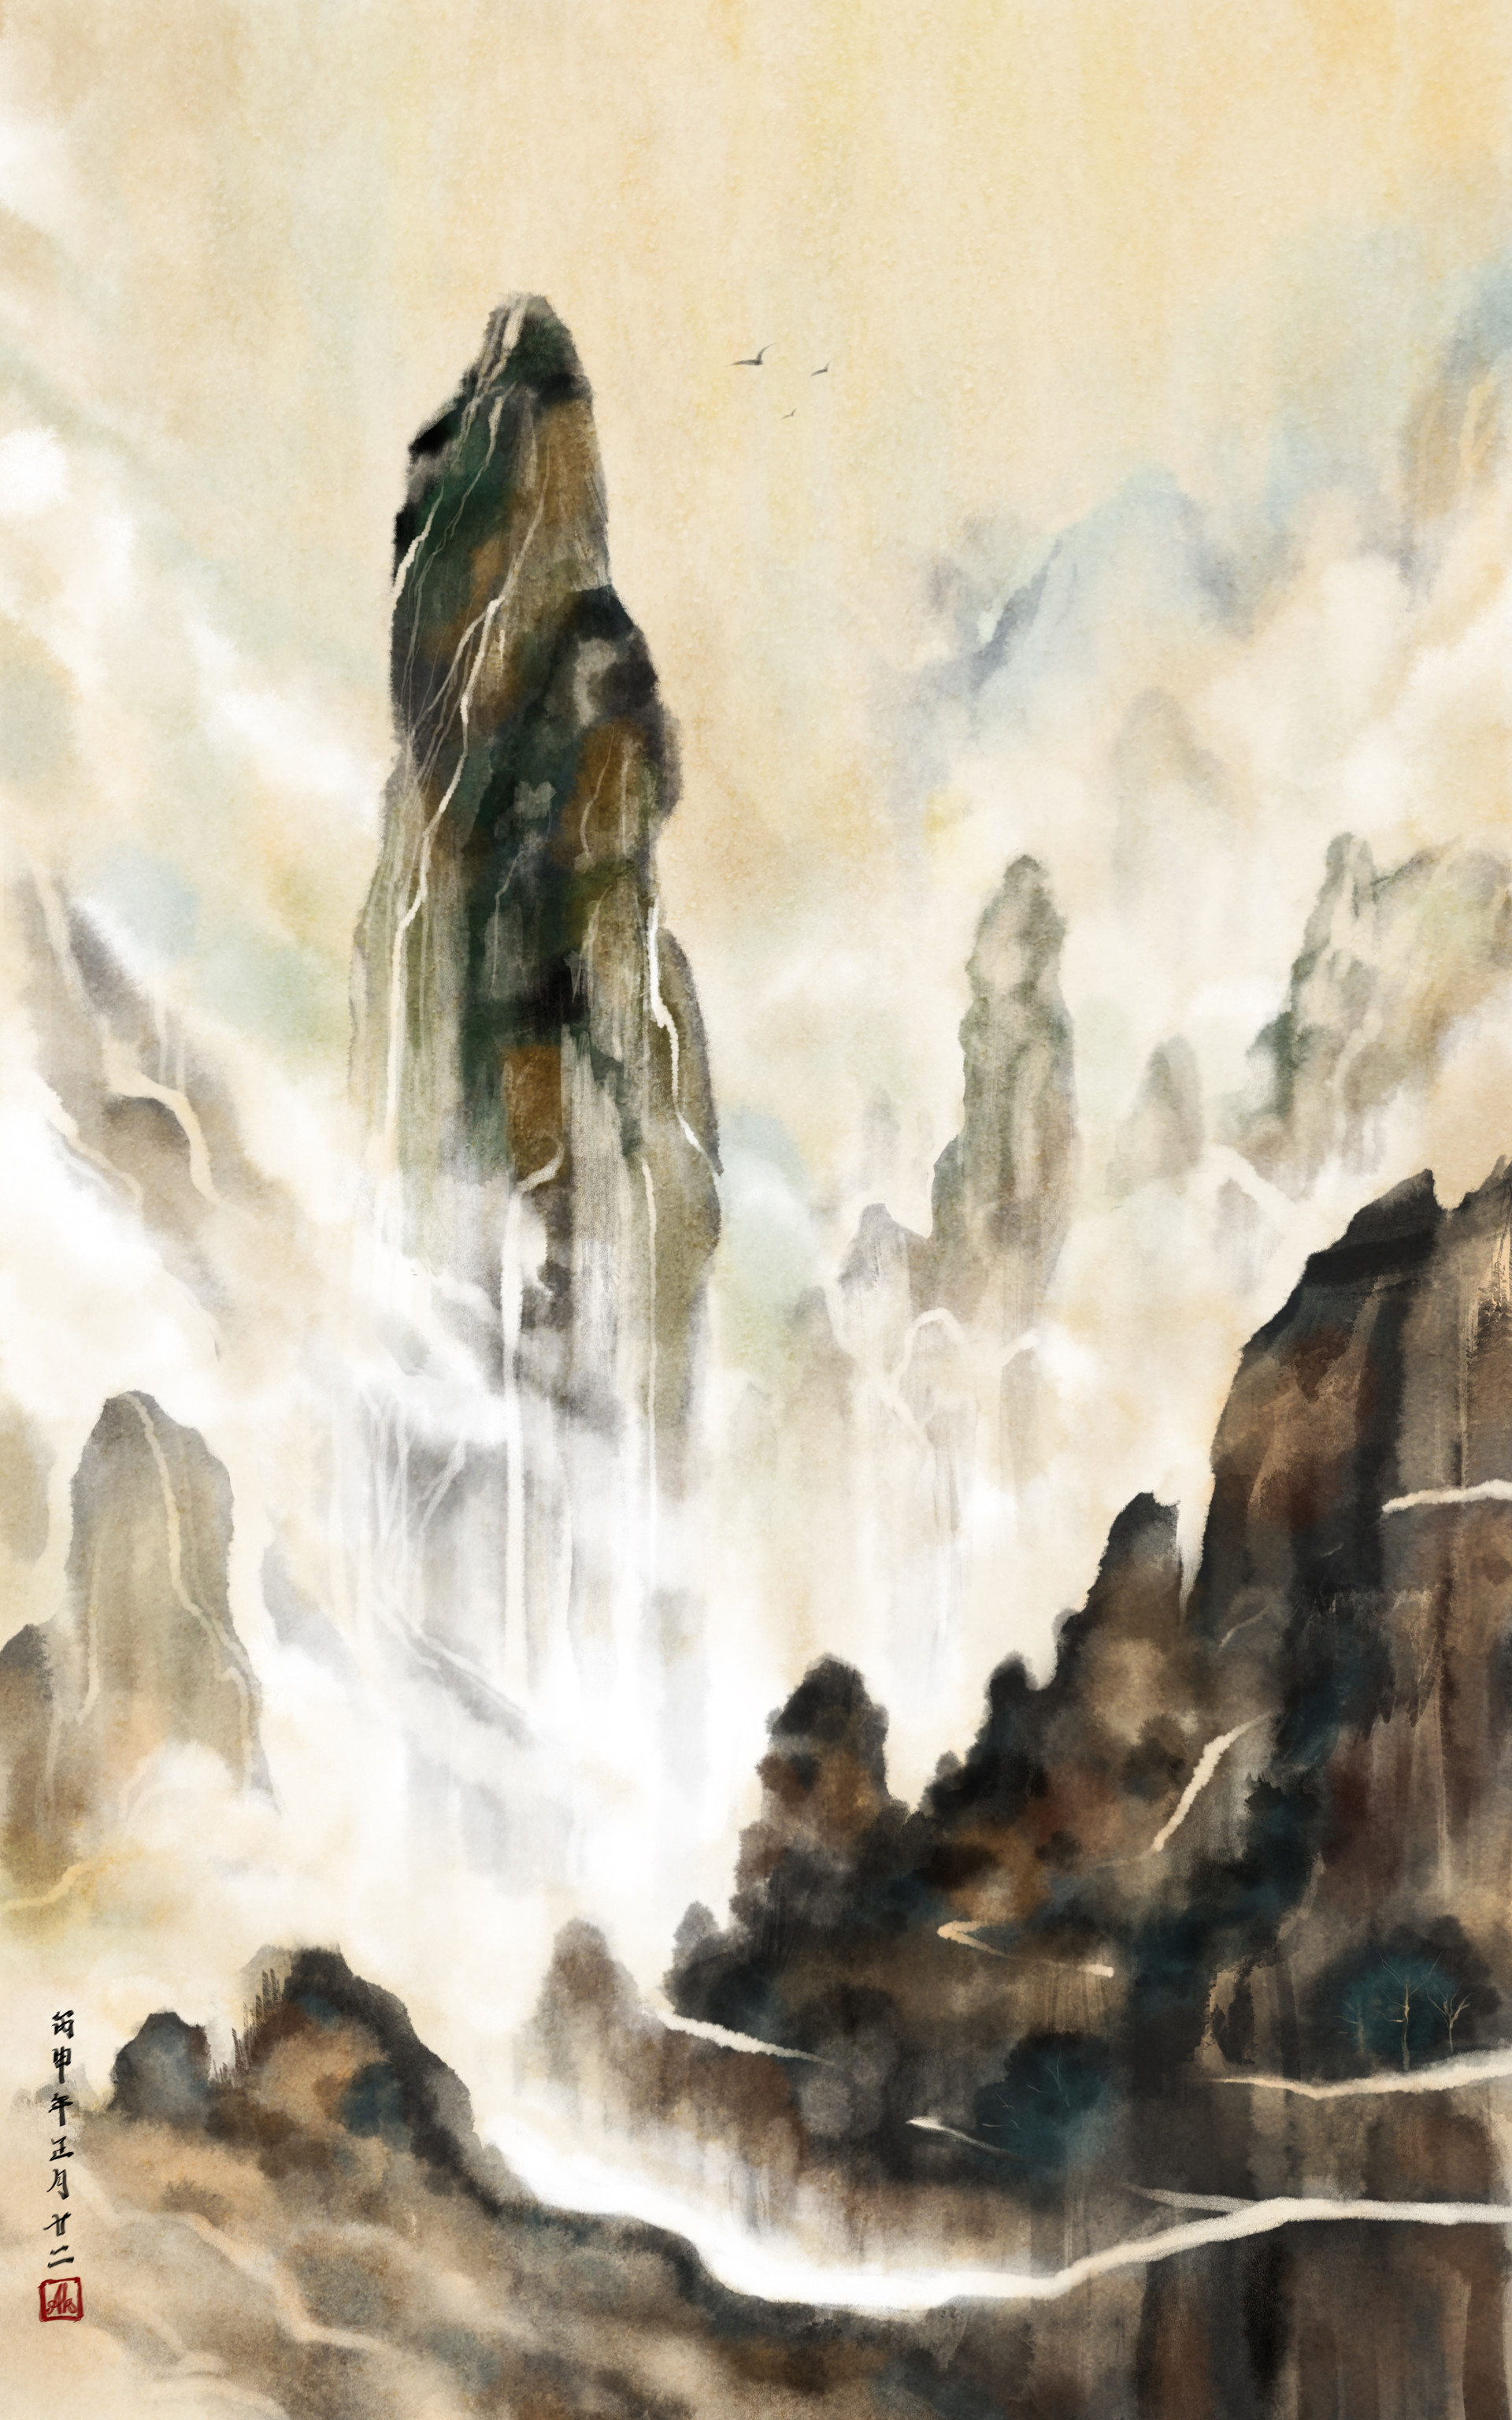 ArtStation - Chinese ink painting : mountain 02, AK Chen